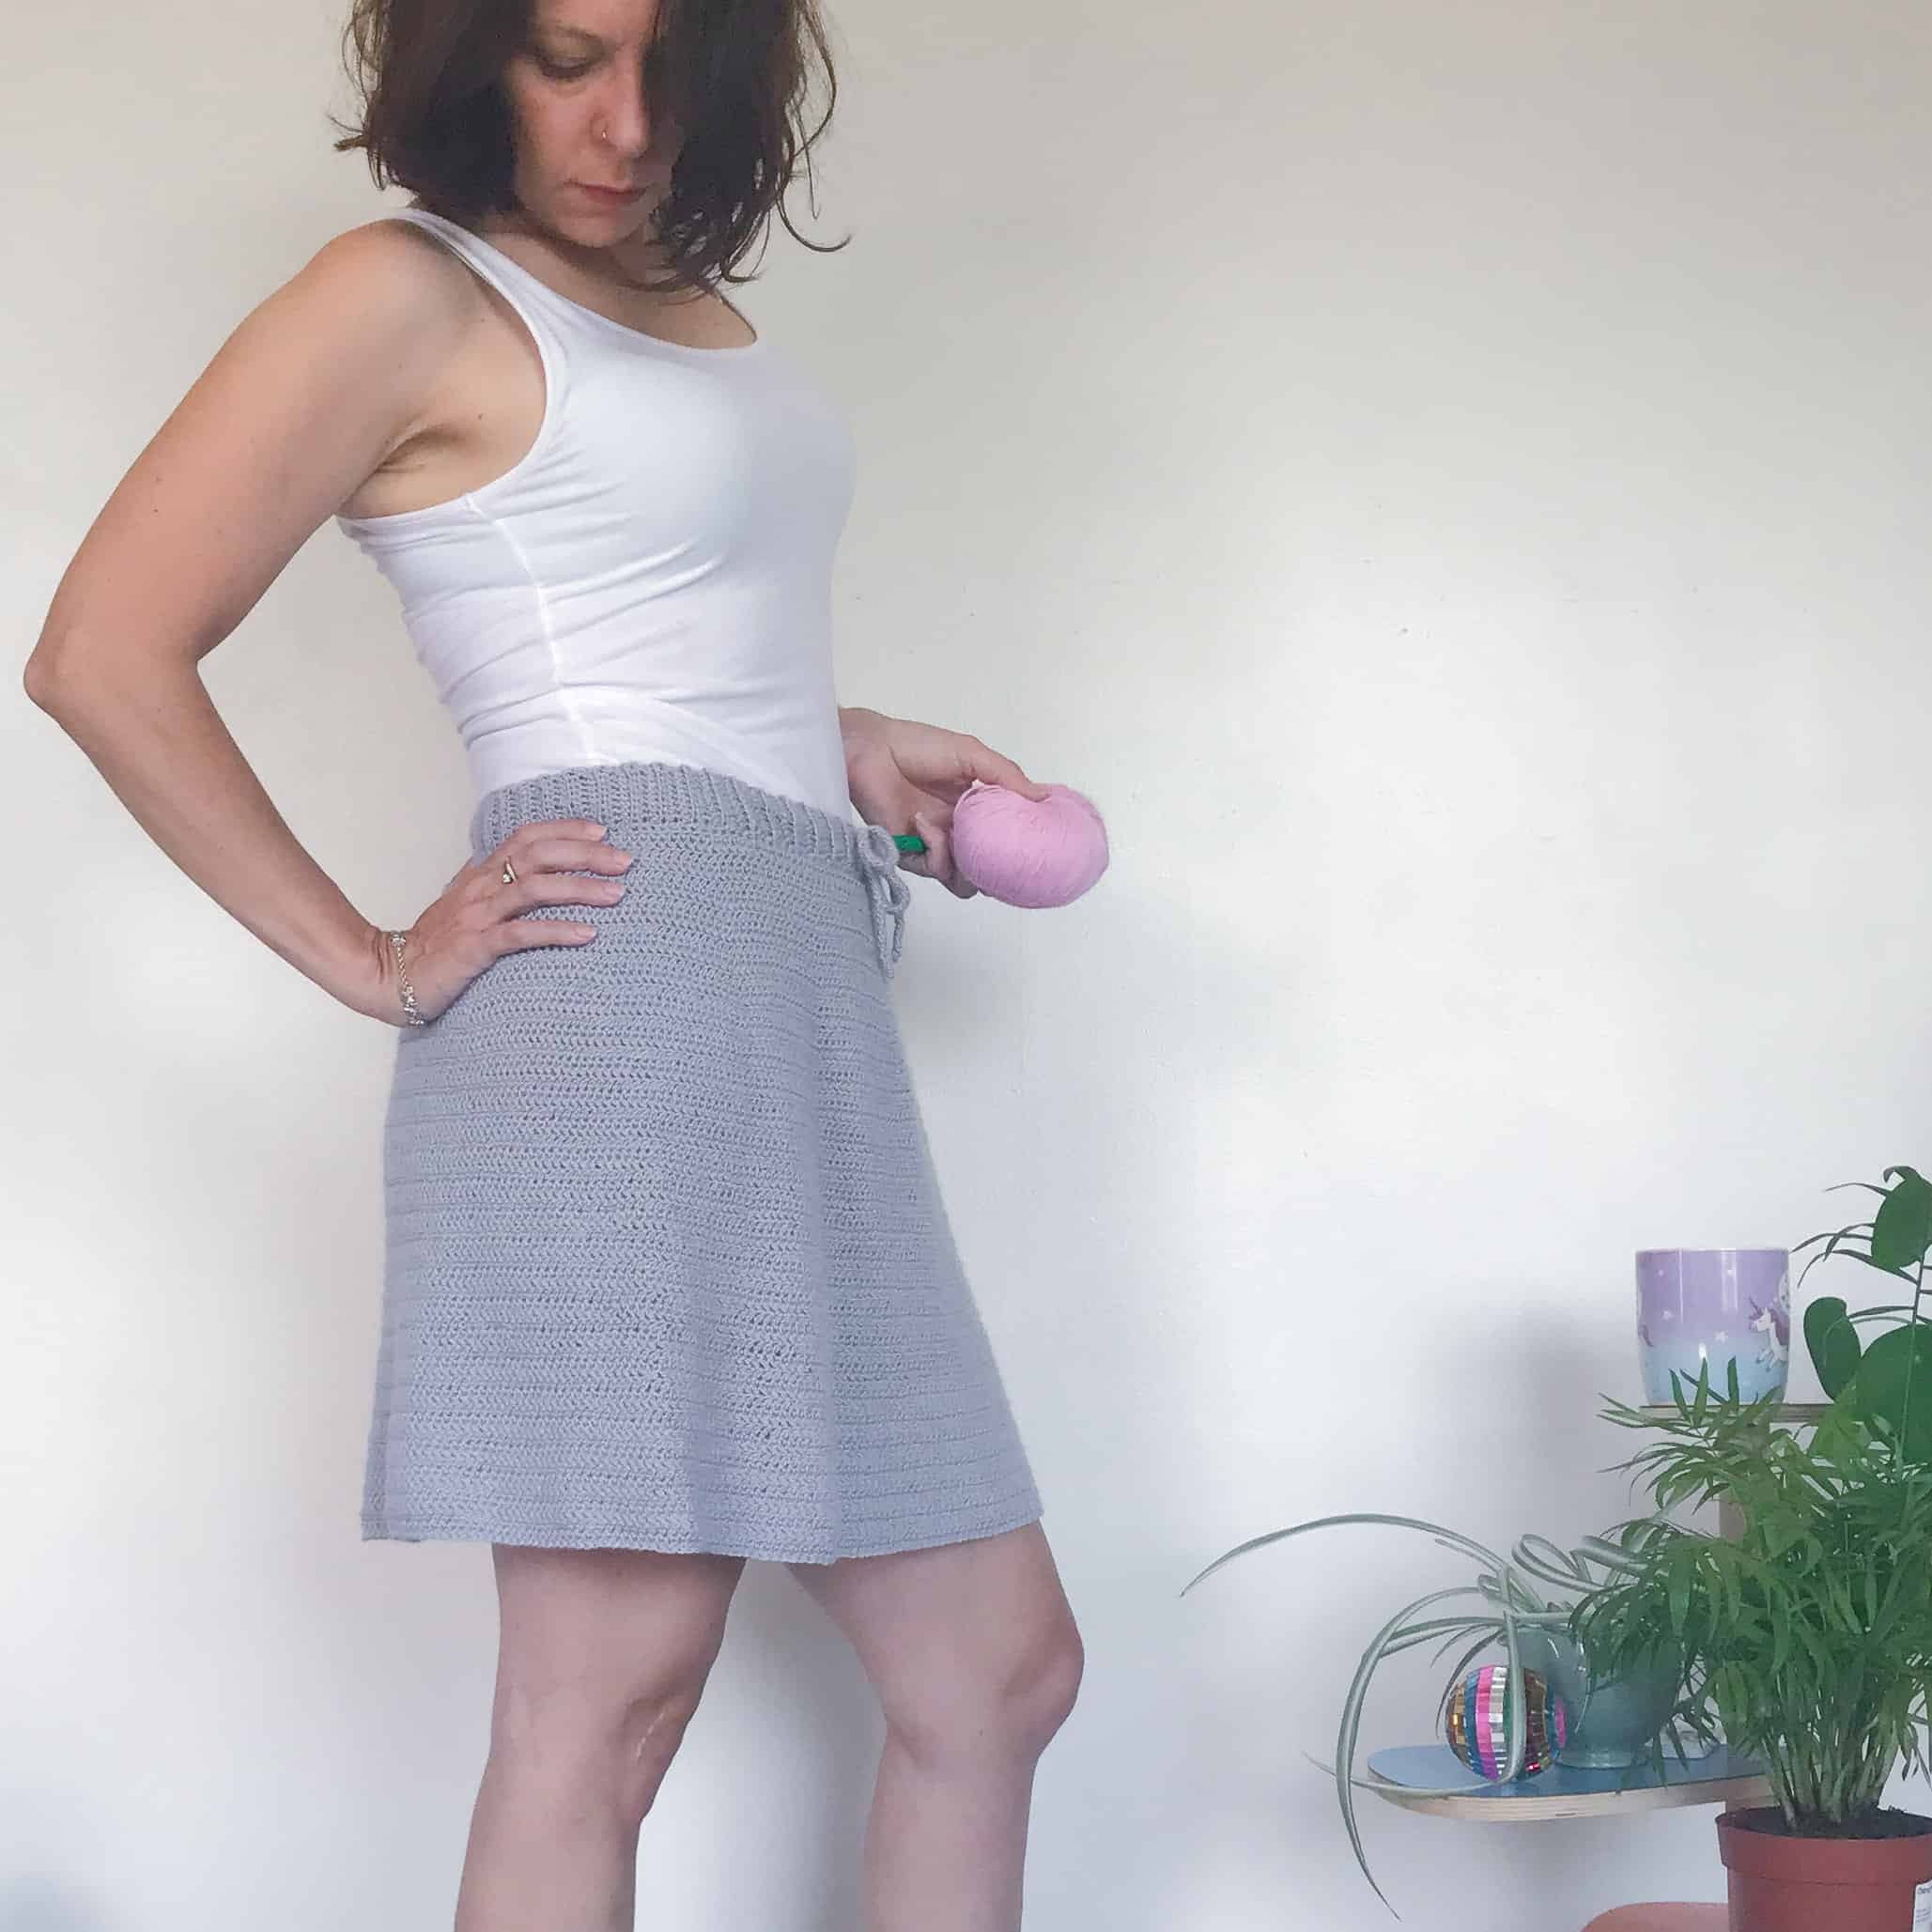 Woman wearing grey crochet skirt and white vest holding a pink back of yarn in one hand whilst the other rests on her hip